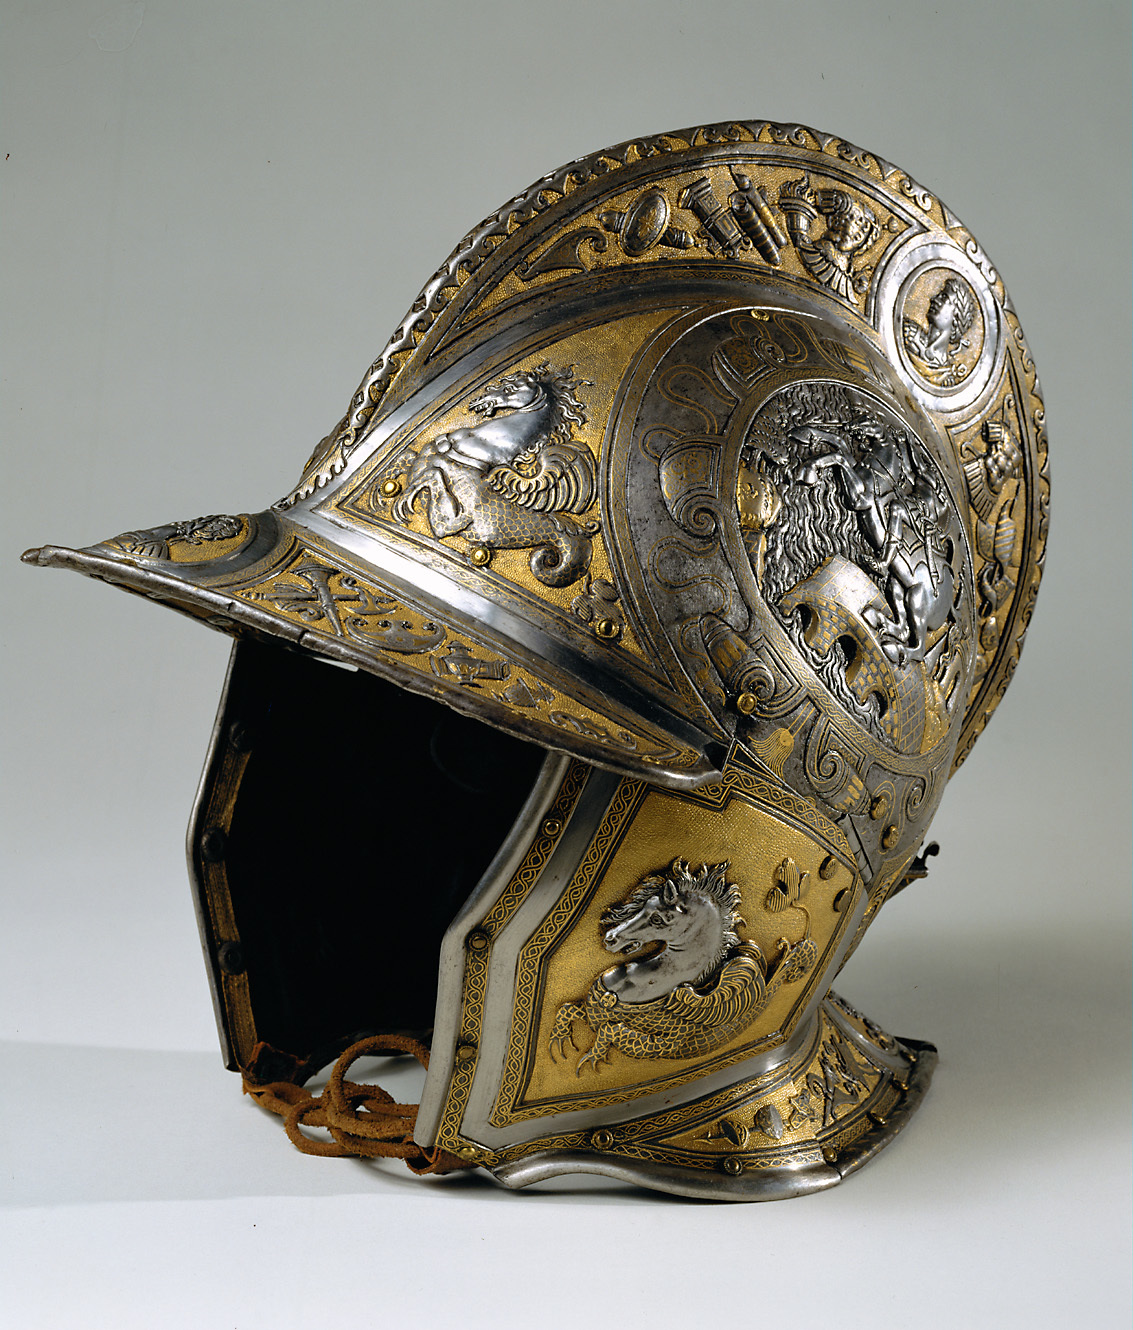 Balaclava with the depictions of Marcus Curtius and Horatius Cocles, 1560, Milan